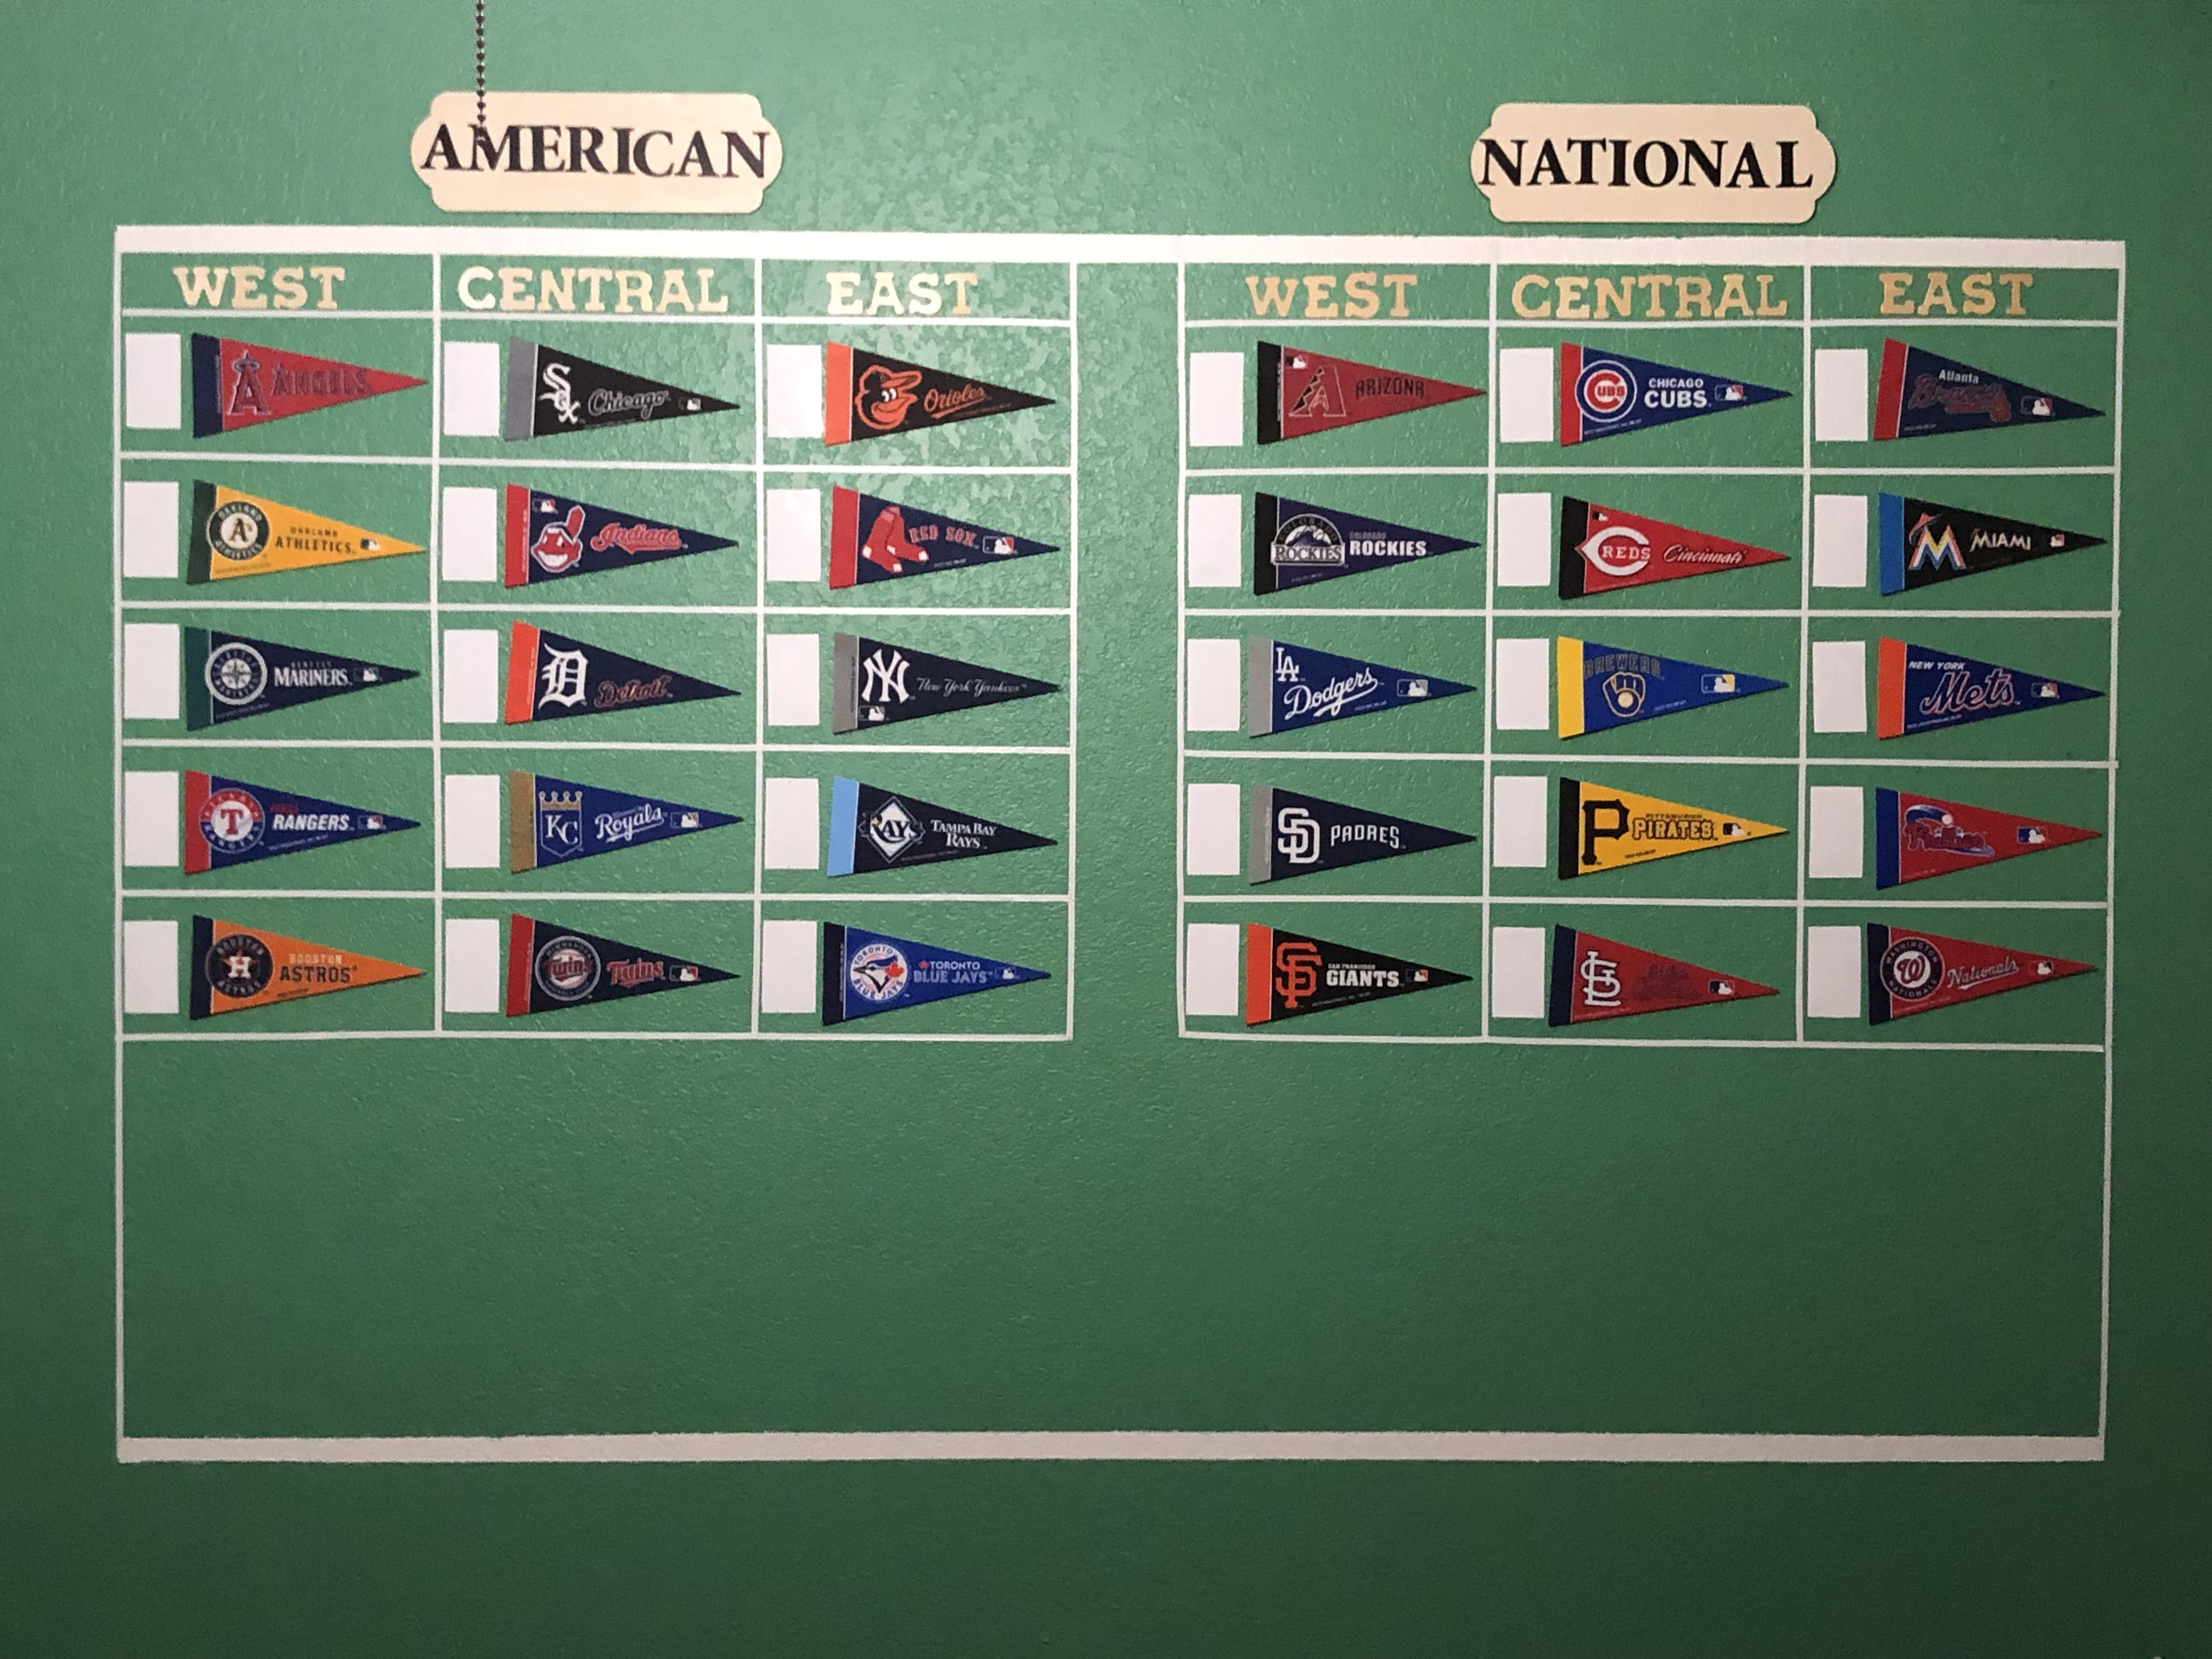 For My Son S 10th Birthday We Created This Mlb Standings Wall 6 5 X 4 With 9 X 4 Pennants Mlb Standings West Central Mlb Baseball